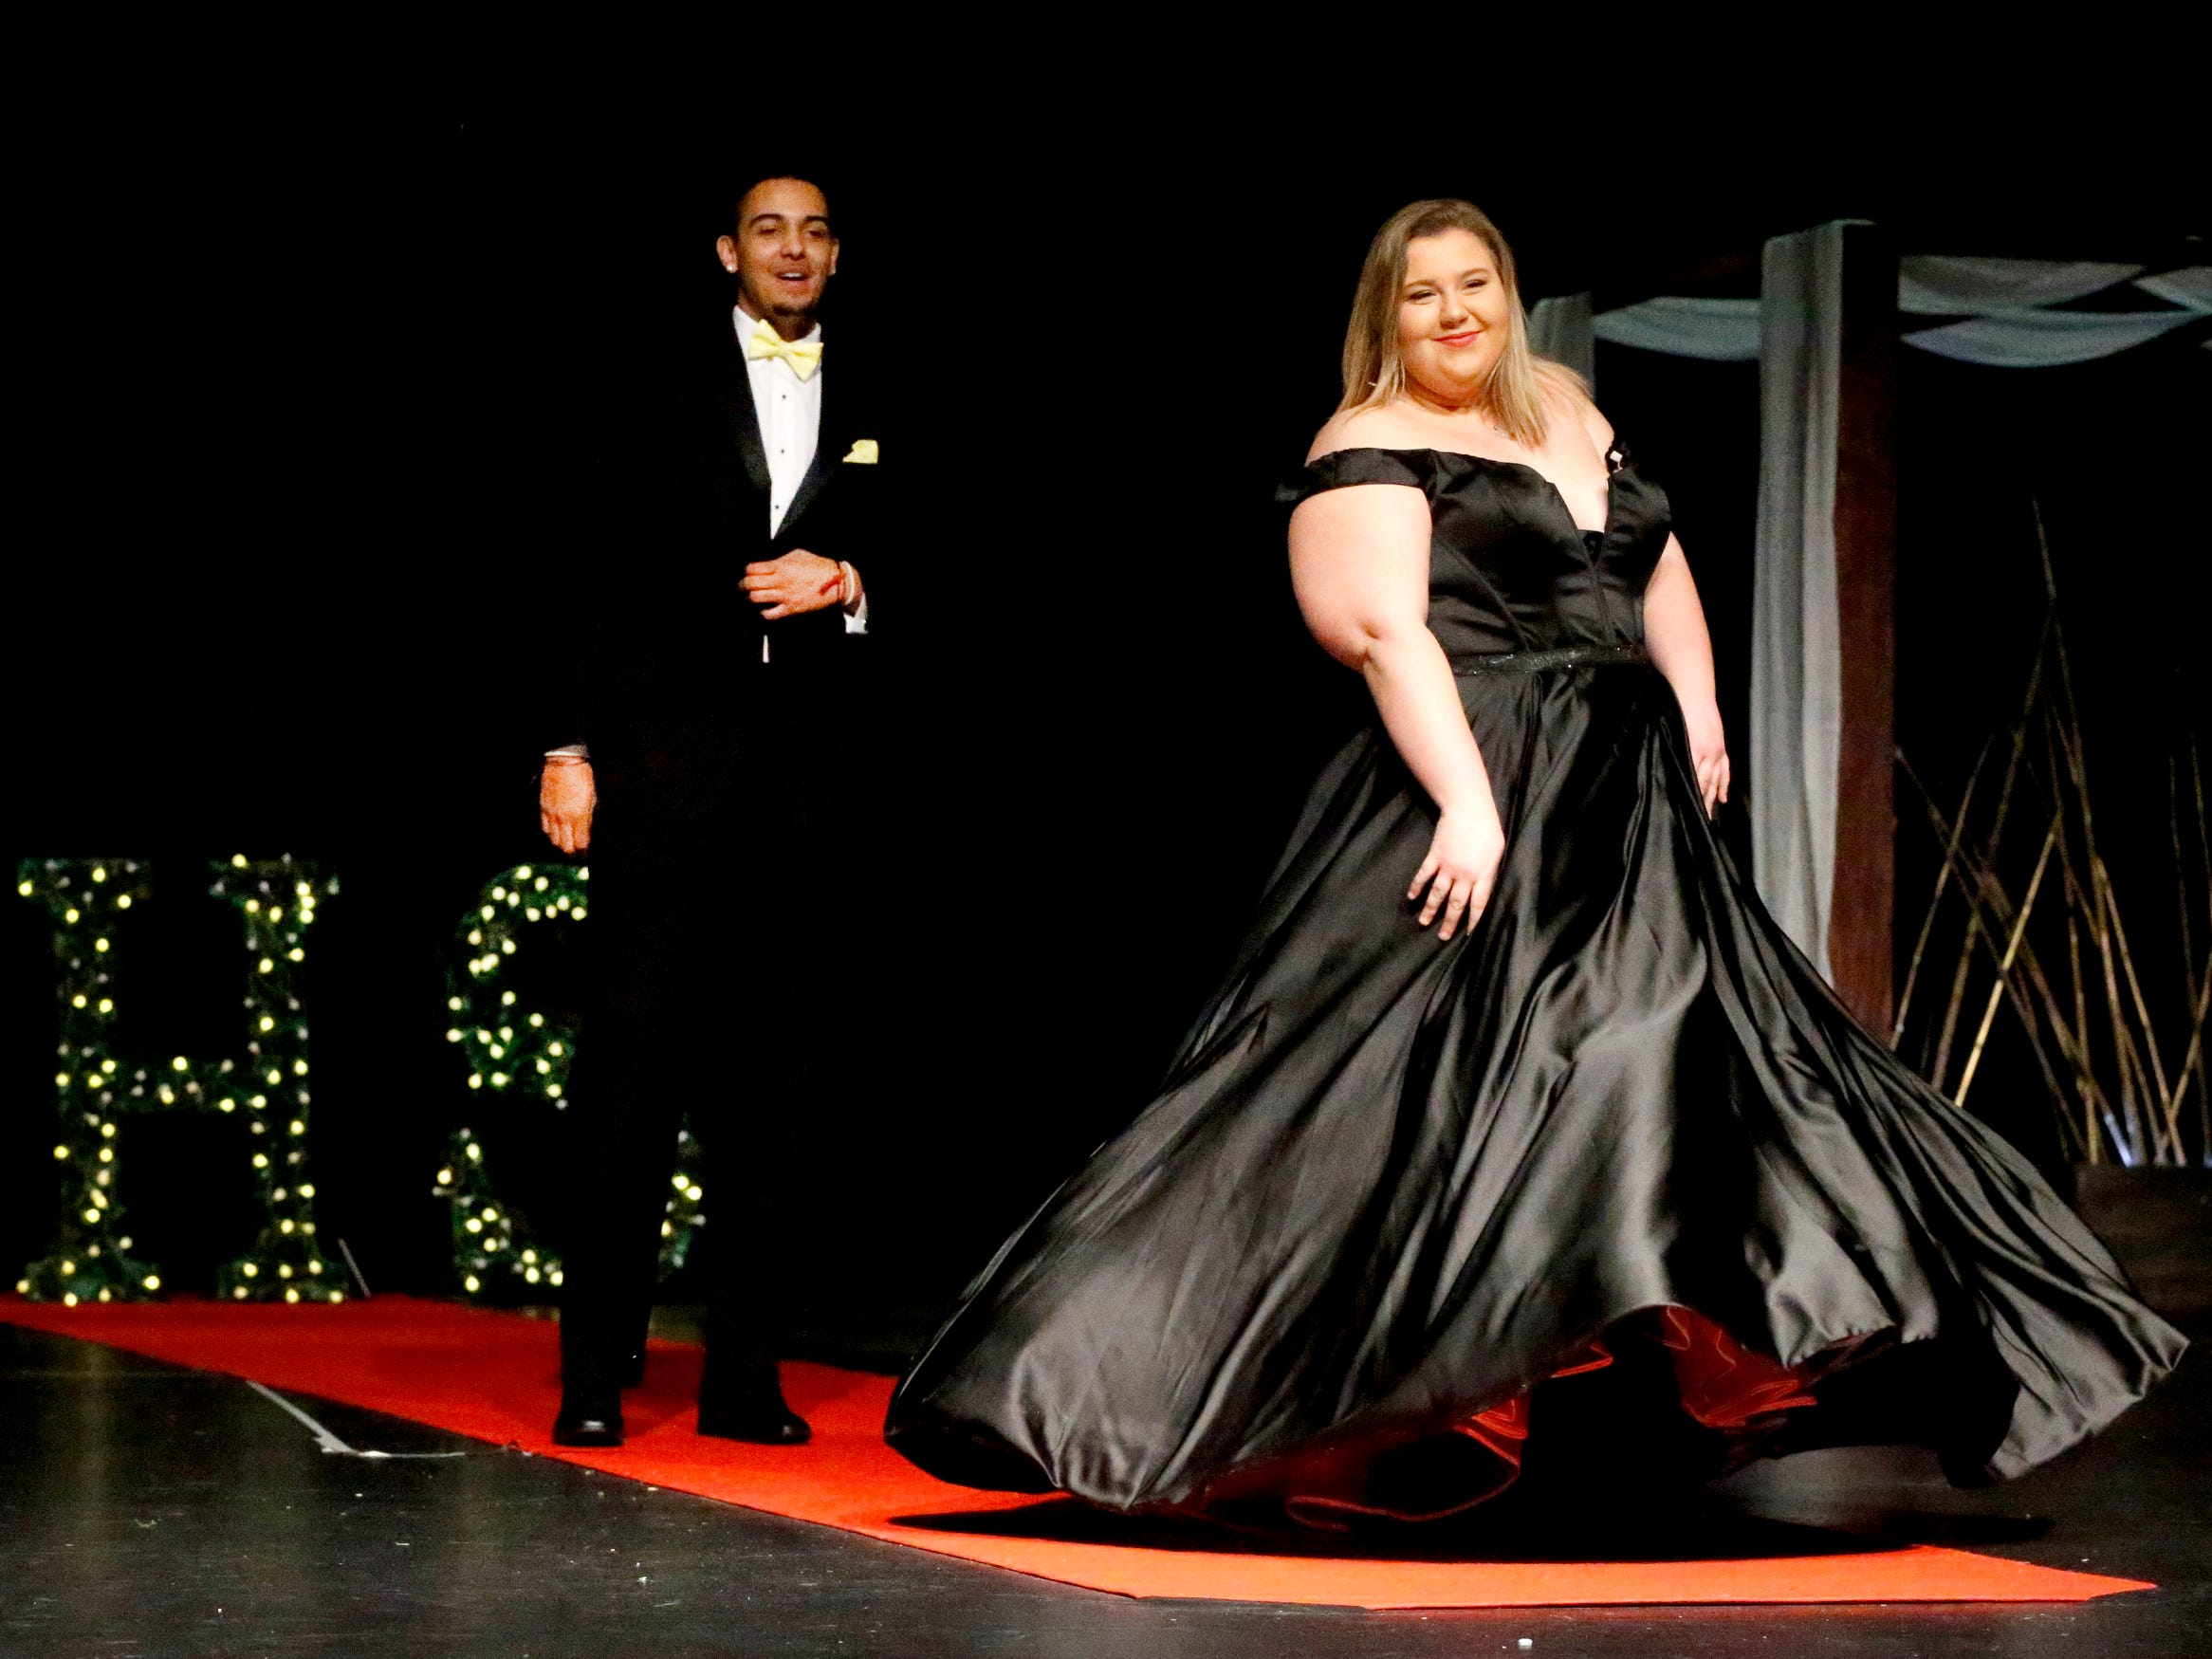 Anna Remkus spins around to show off her dress as O'Brien Gentry waits to show off his tux during the Siegel Prom Fashion show on Thursday, Feb. 14, 2019.